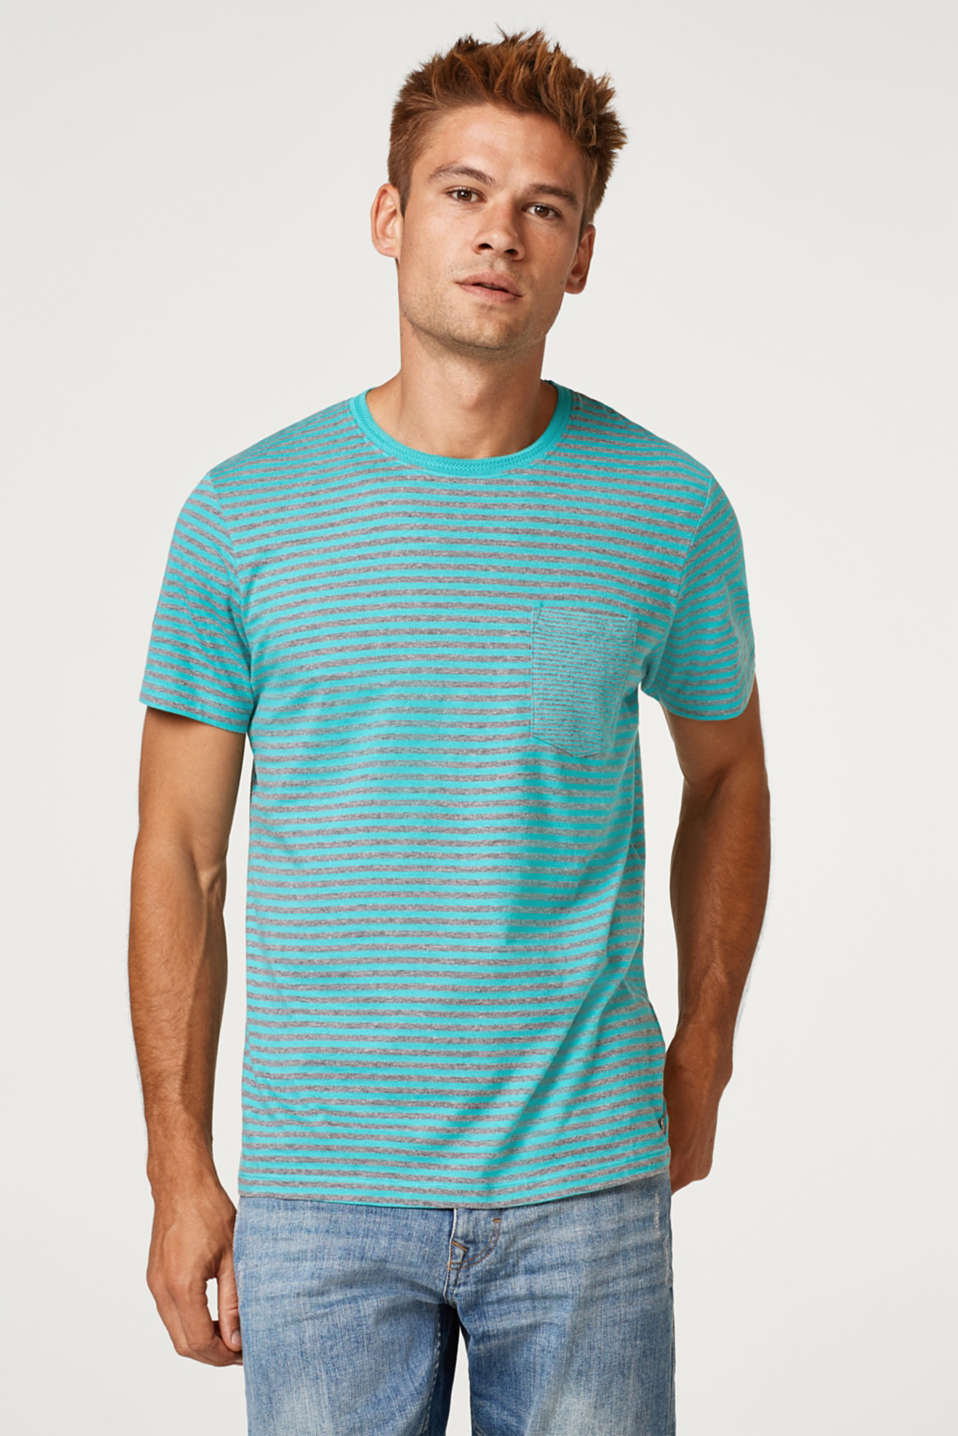 Esprit - Striped jersey T-shirt in blended cotton